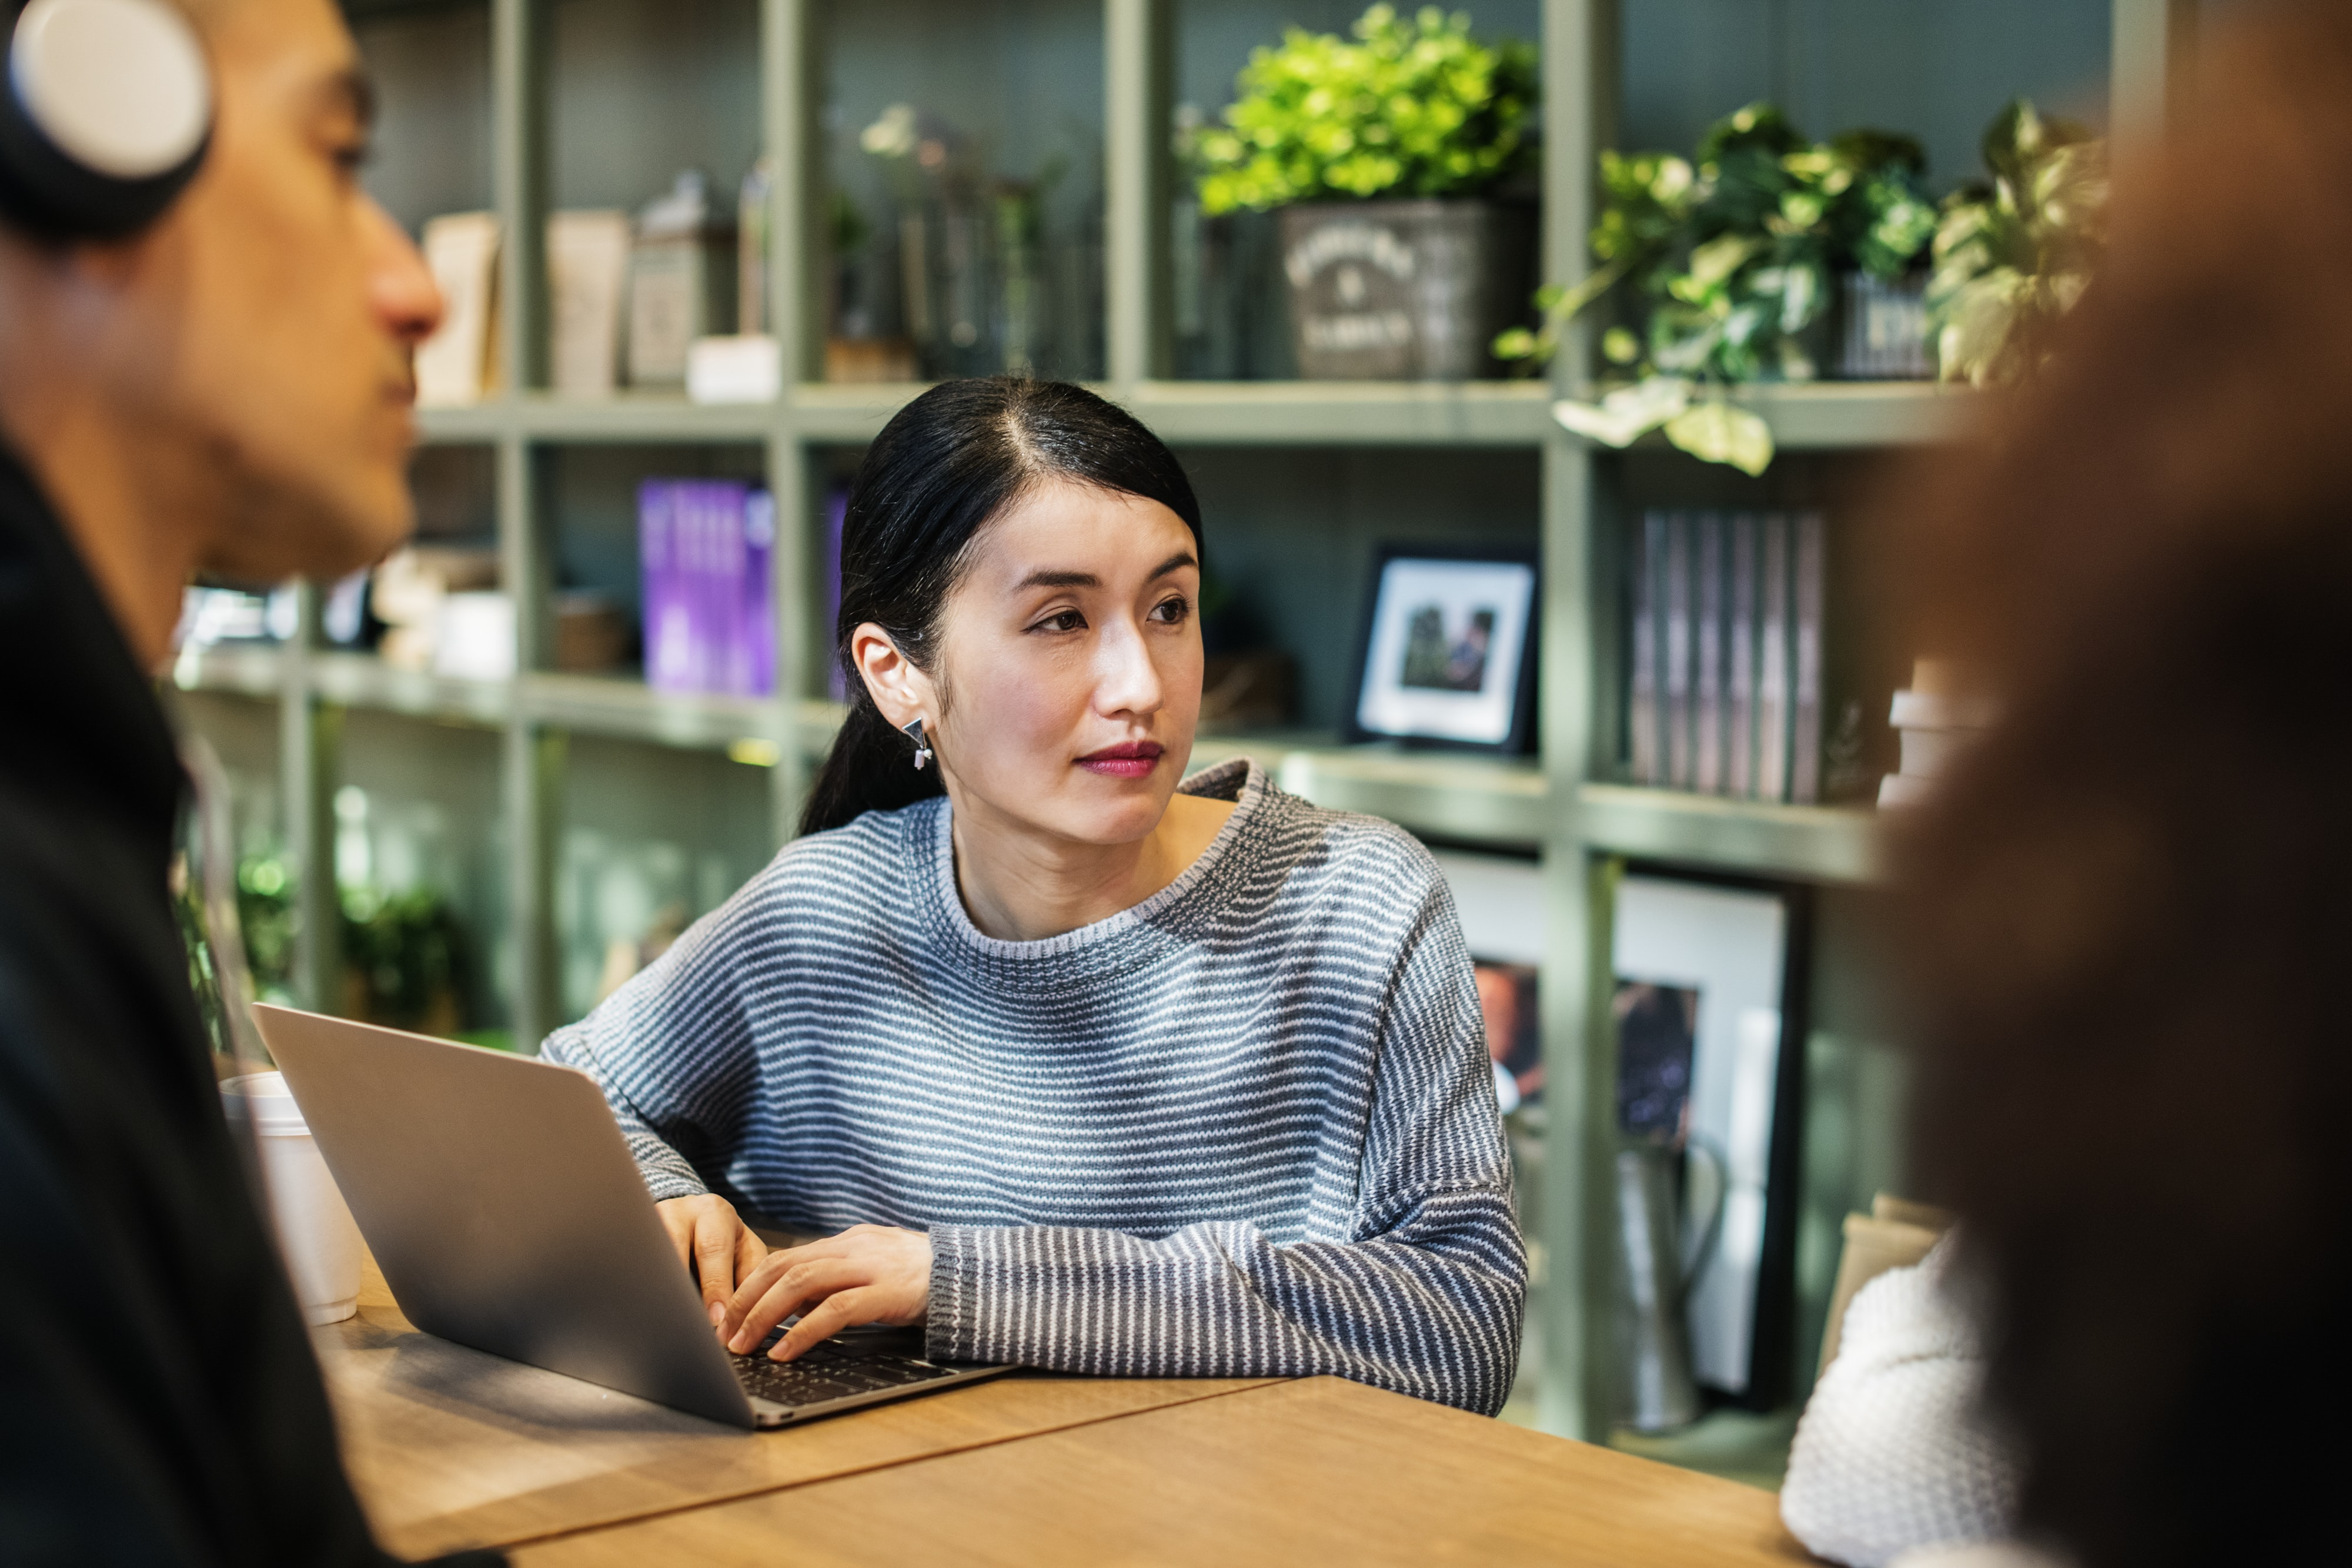 woman sitting in table using laptop while looking to her left